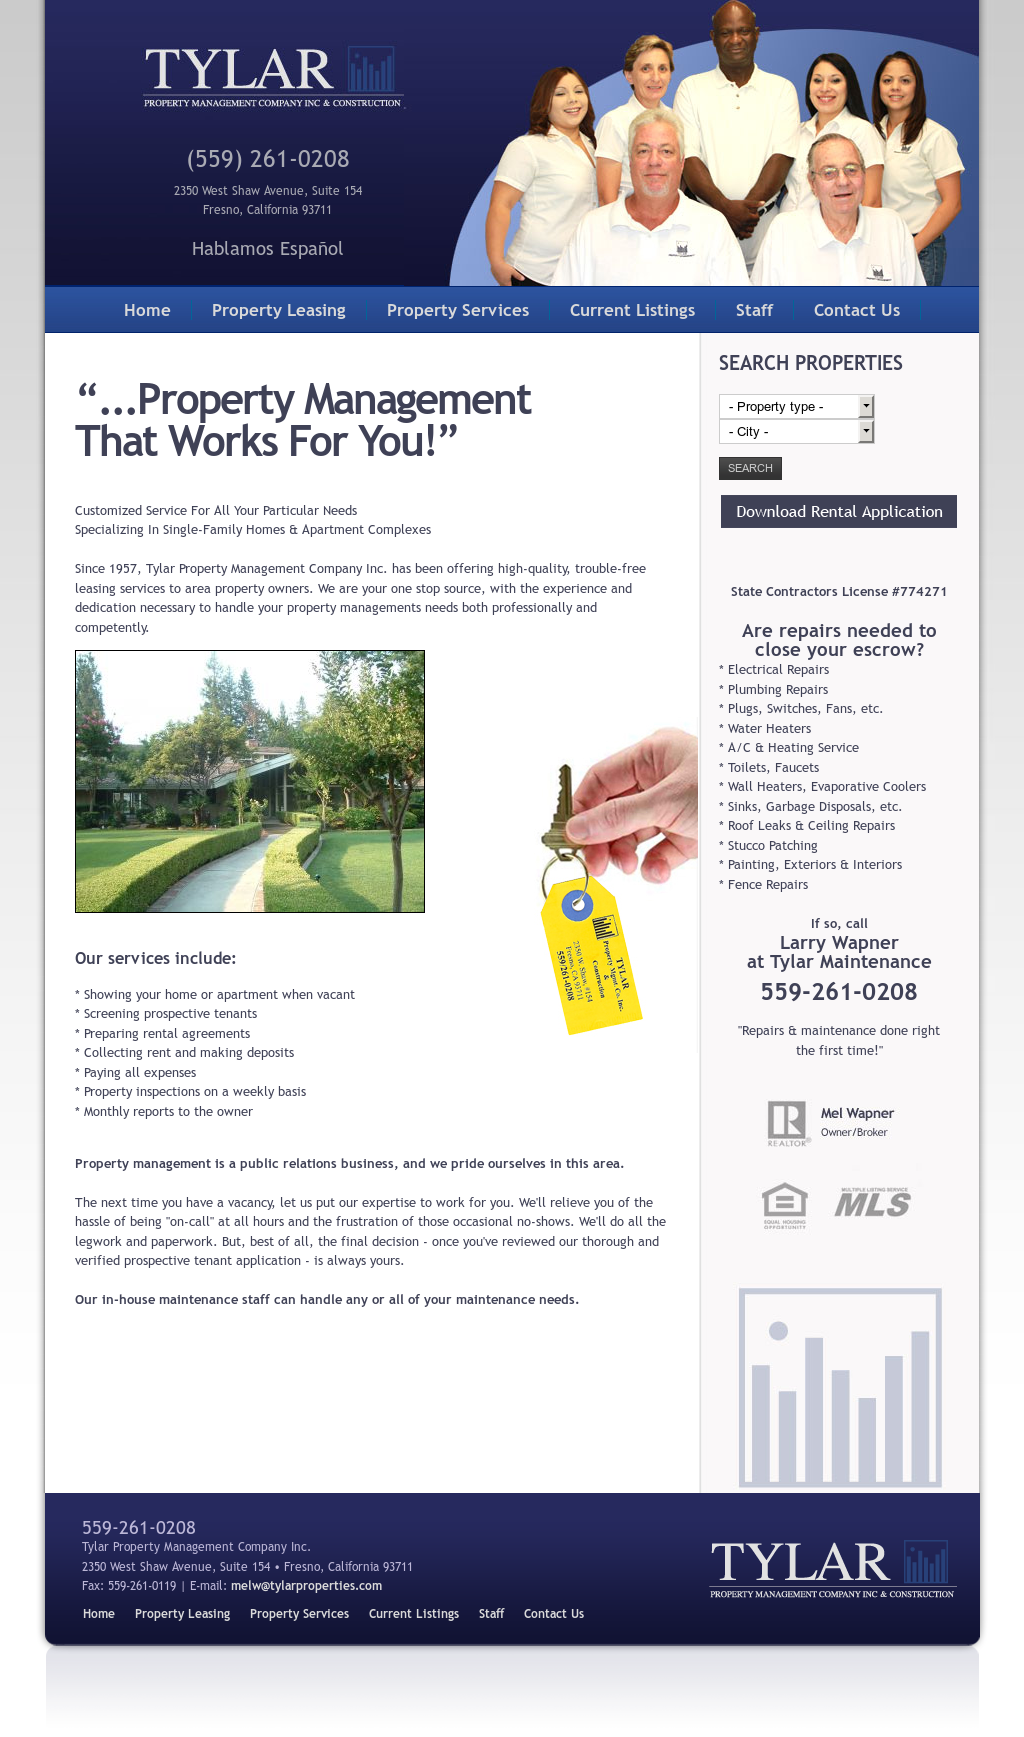 Tylar Property Management Competitors, Revenue and Employees